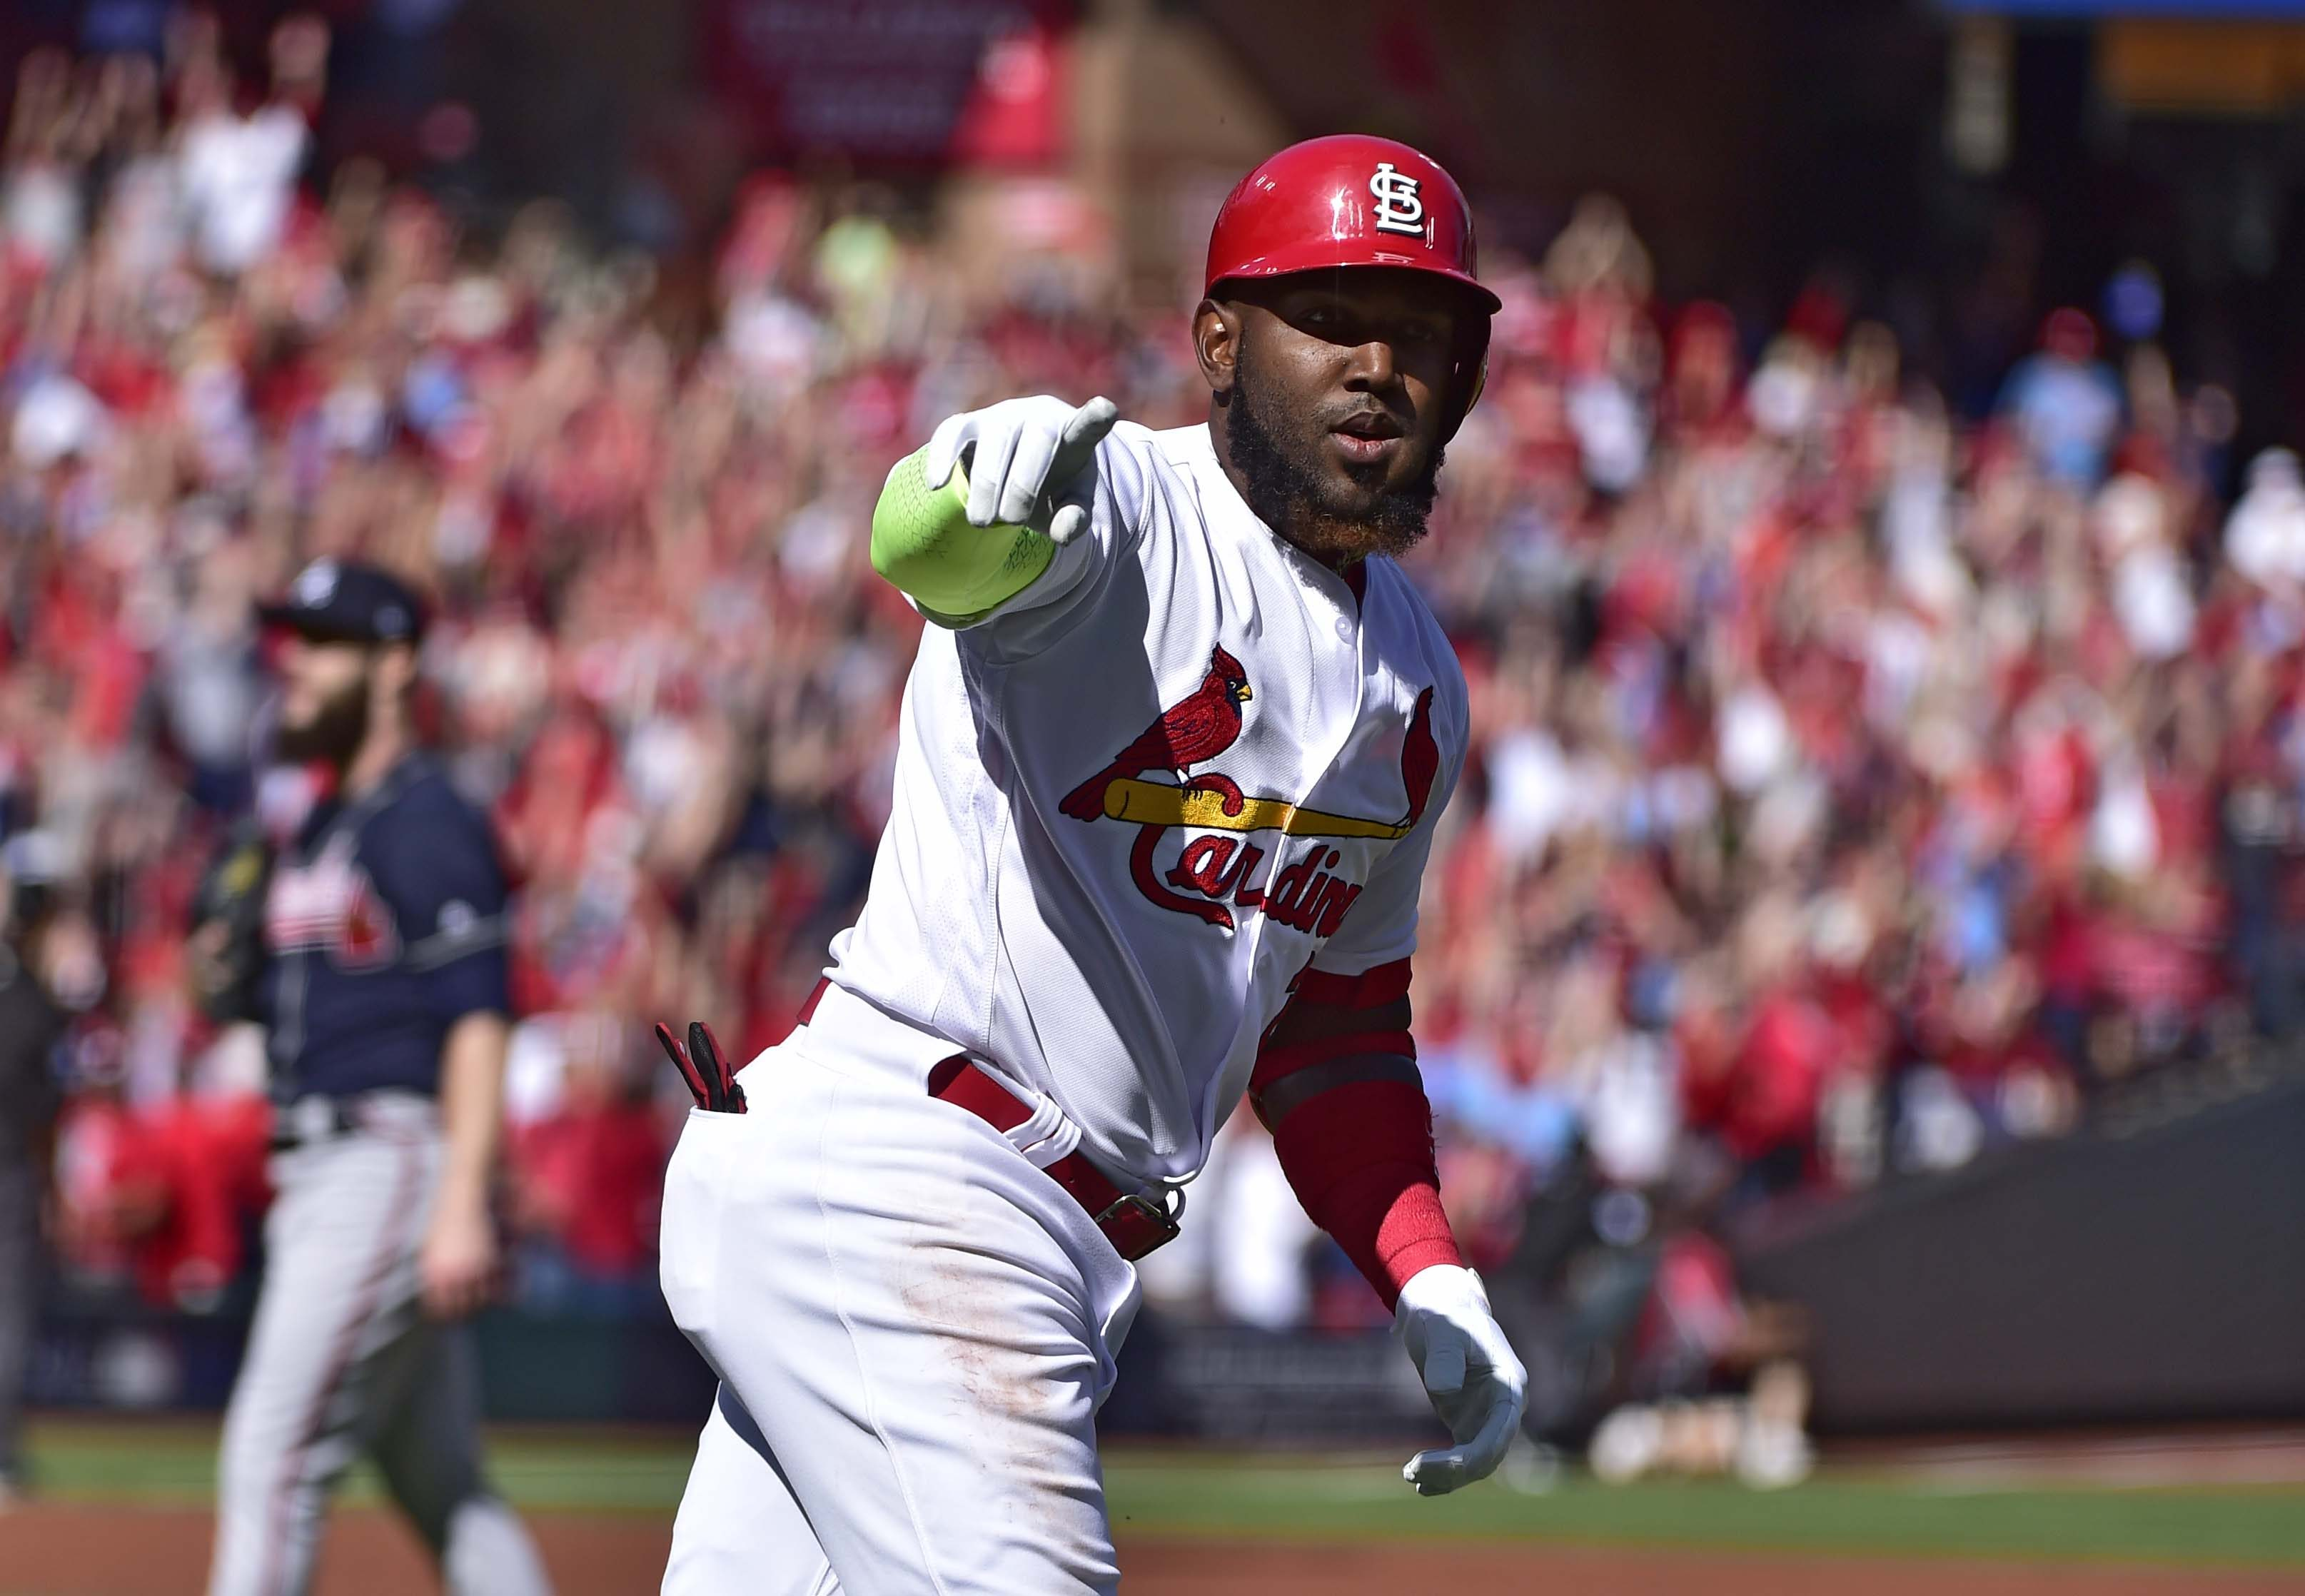 Atlanta Braves Sign Marcell Ozuna to One-Year Deal